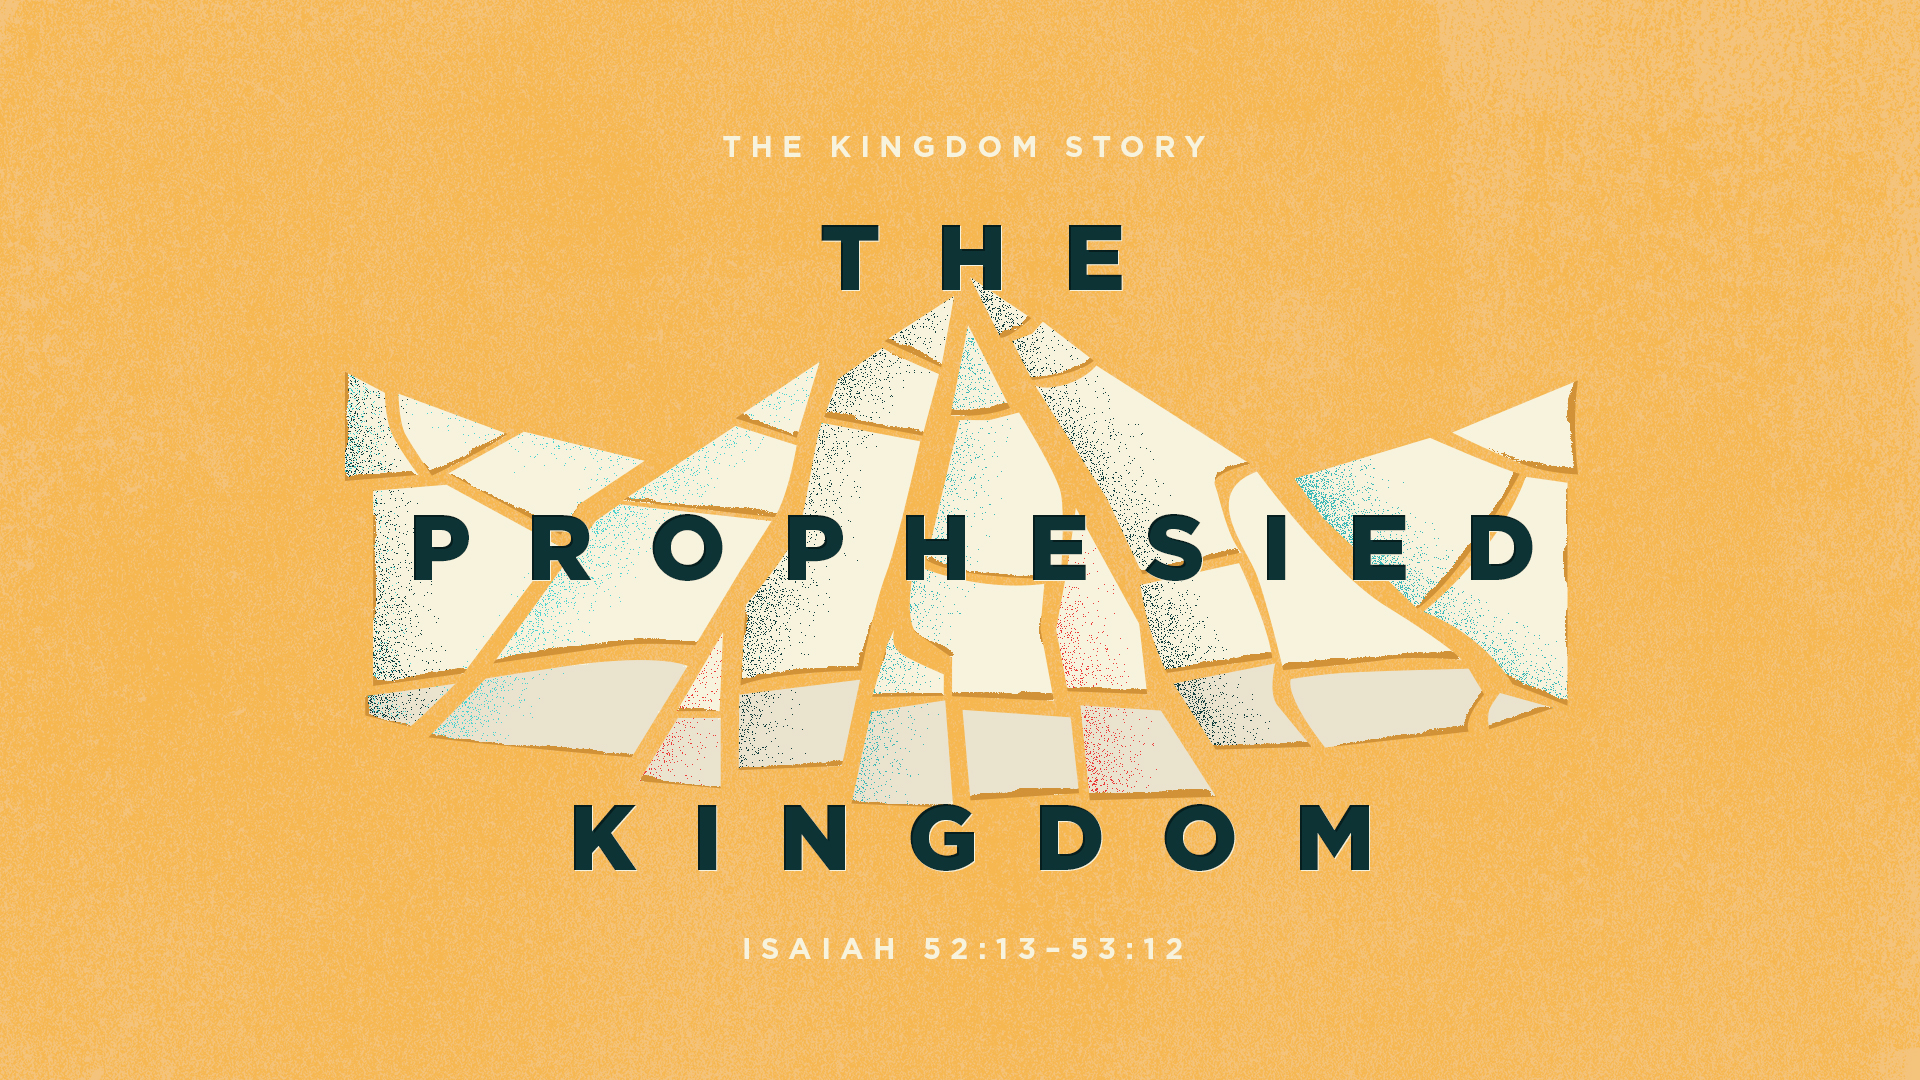 The Prophesied Kingdom